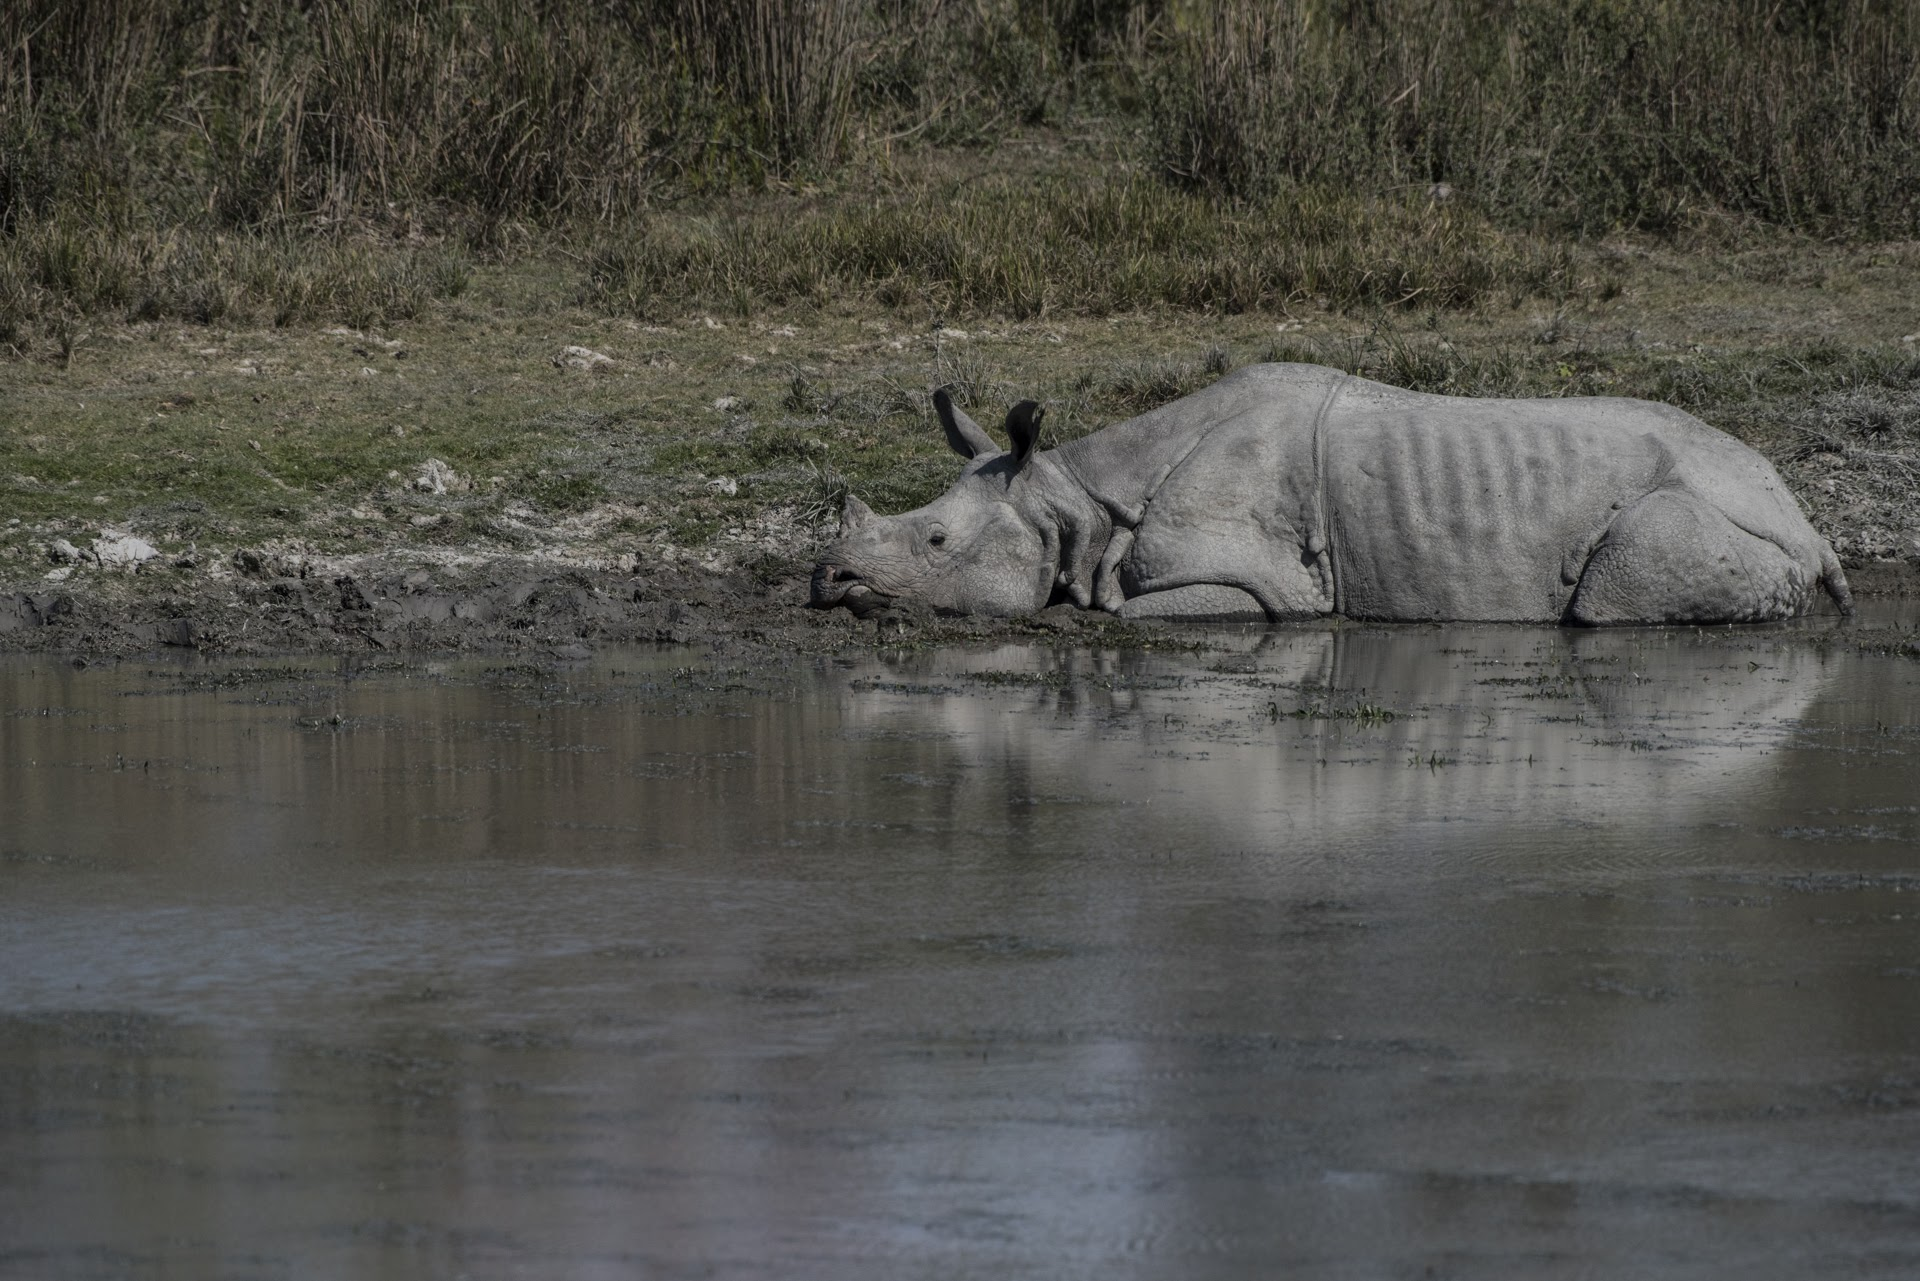 Rhino in the water - Kaziranga